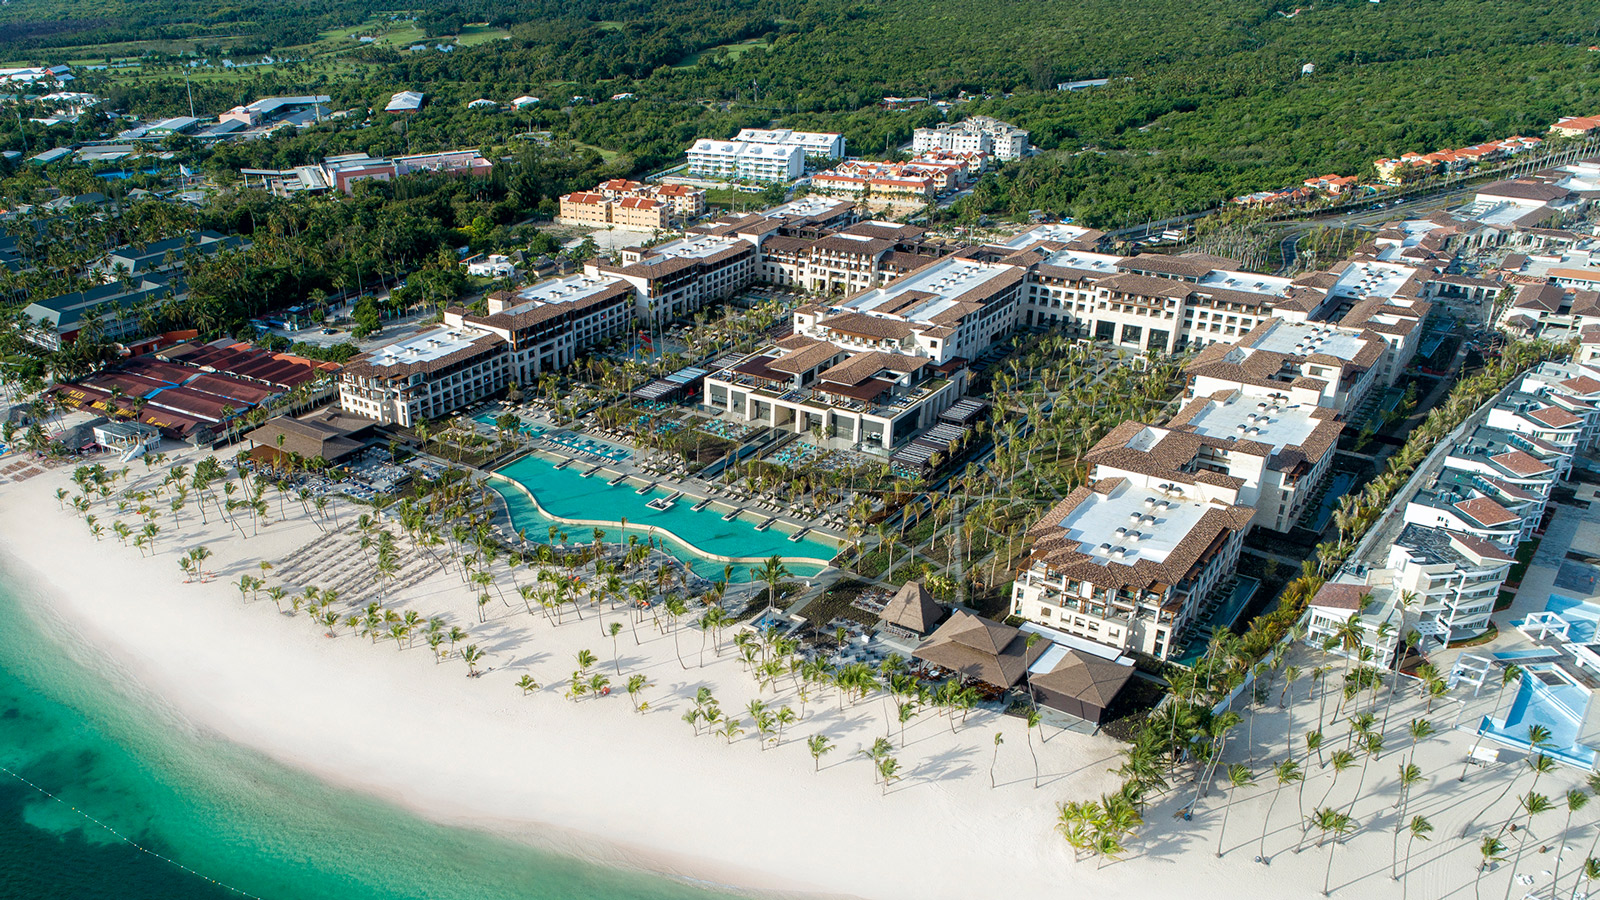 PORCELANOSA Group Projects: Hotel Lopesan Costa Bavaro, an idyllic relaxation destination in Punta Cana